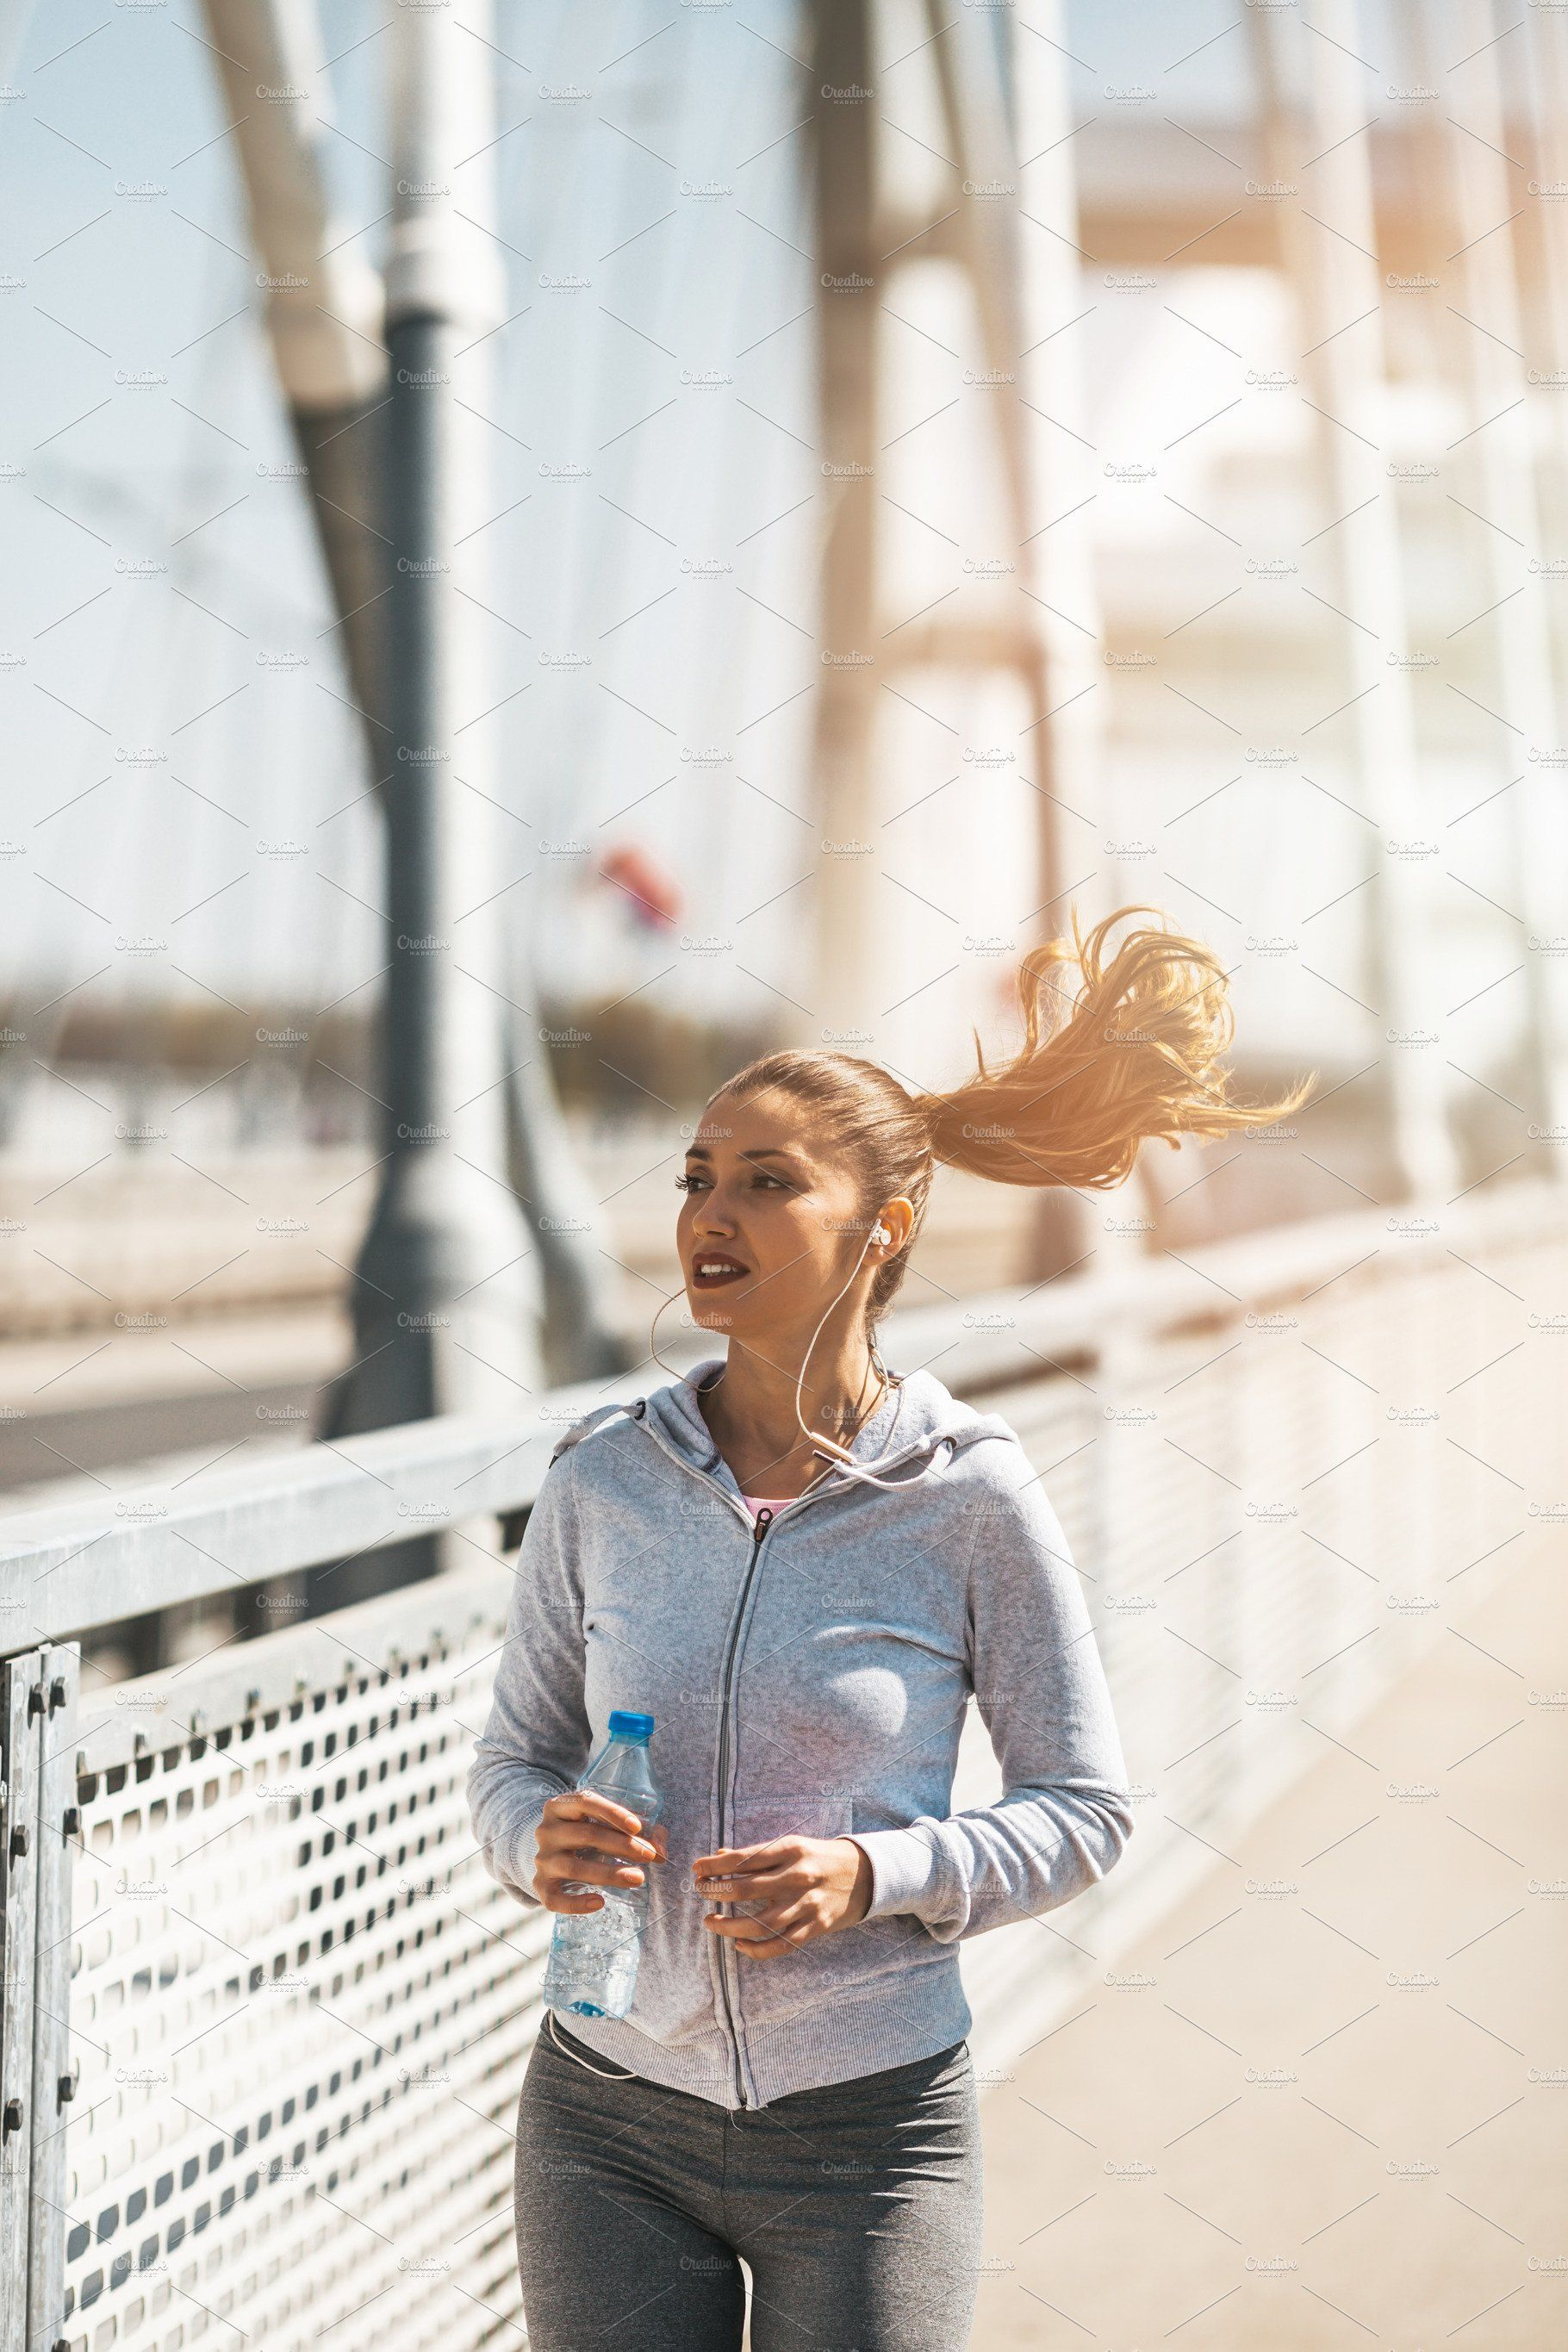 Outdoor Fitness Fit Women Lifestyle Photography Women Fitness Lifestyle Photography One of many great free stock photos from pexels. pinterest